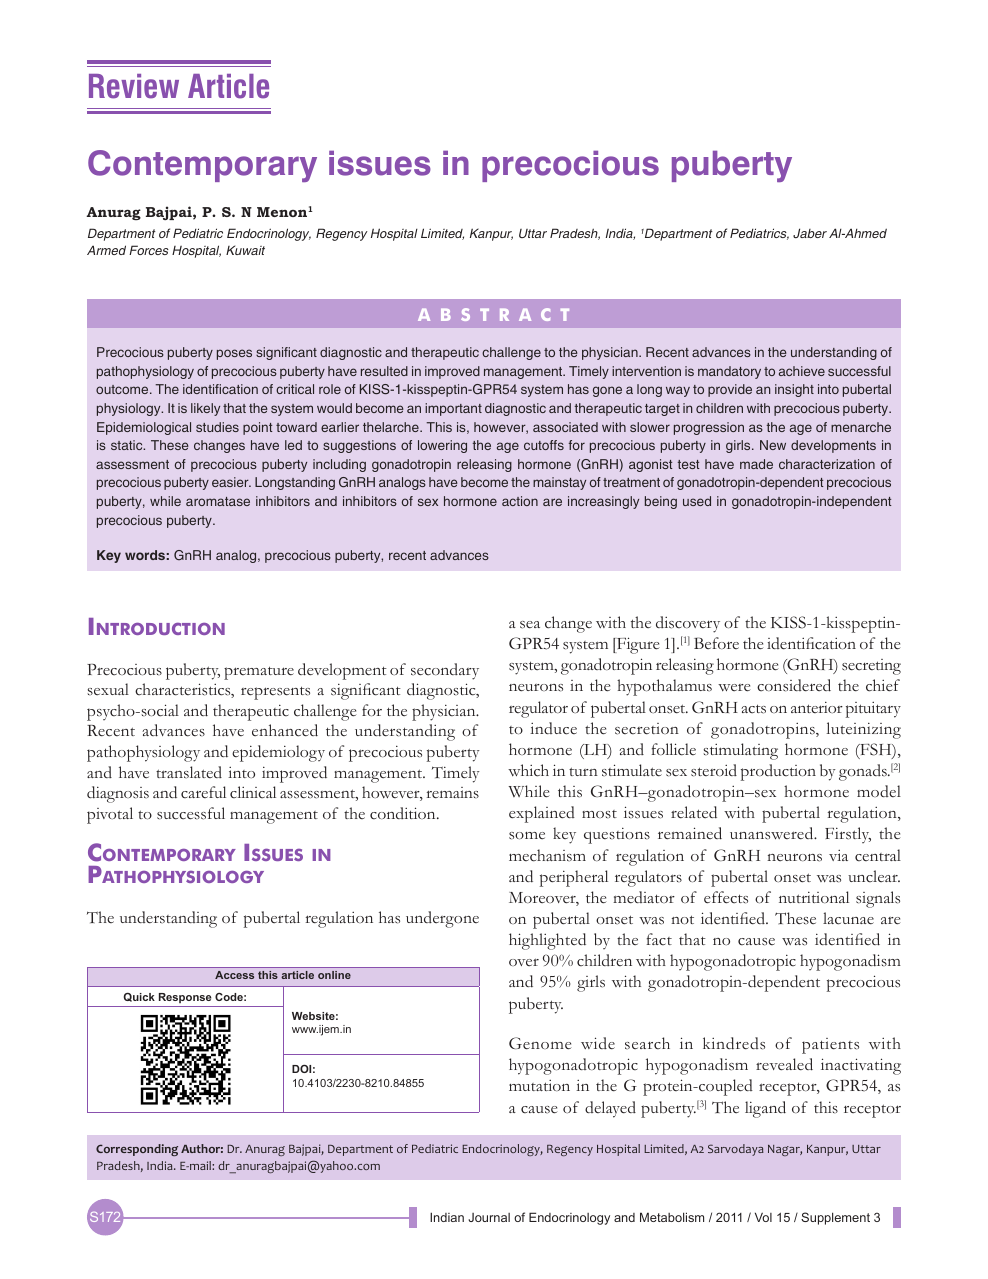 Contemporary issues in precocious puberty – topic of